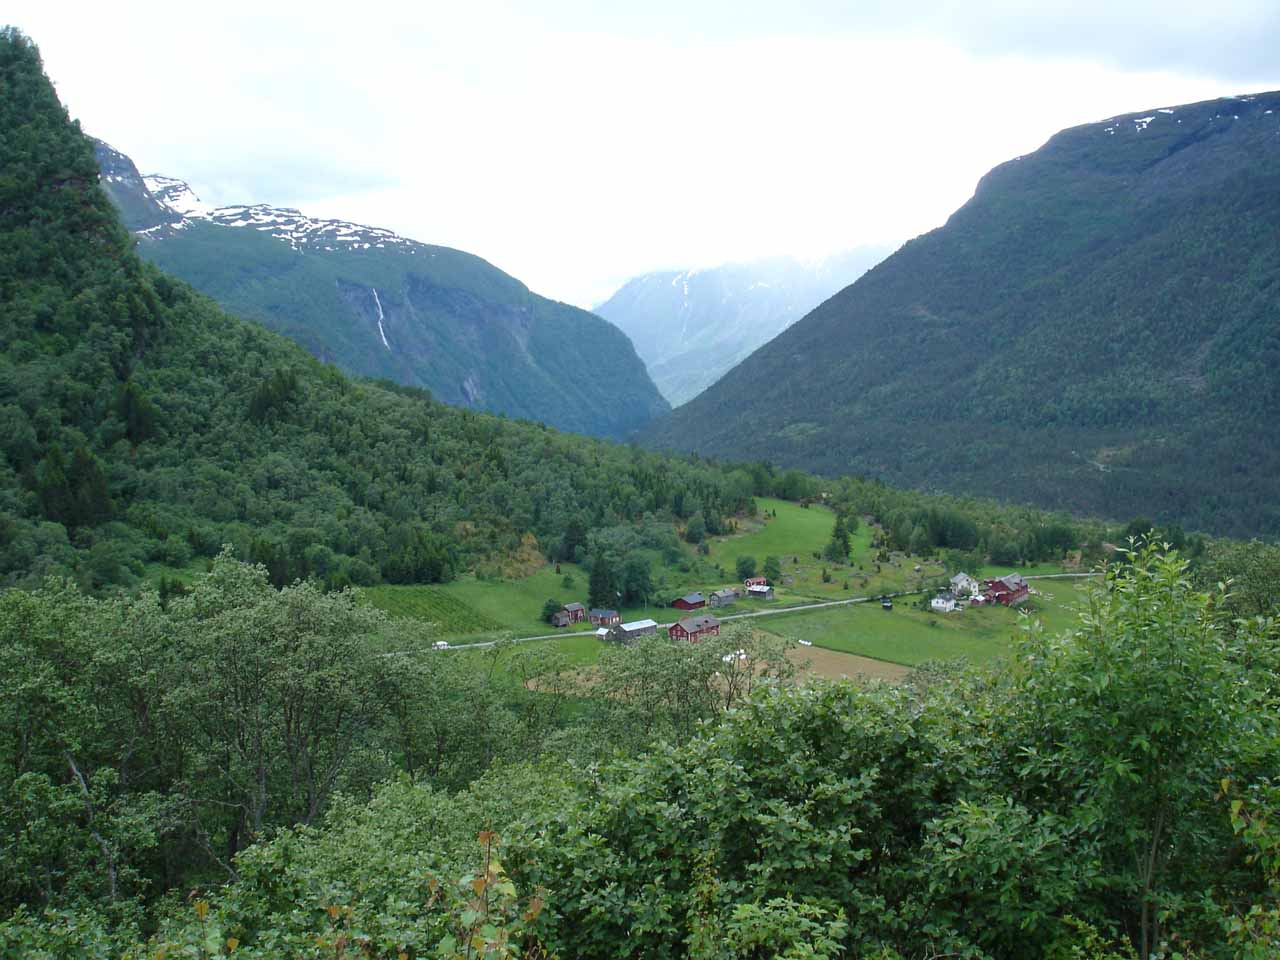 Earlier in the day we traversed Fardalen en route to Skjolden and then the Jostedalen Valley. We got this view as we were headed to Skjolden while approaching Turtagrø